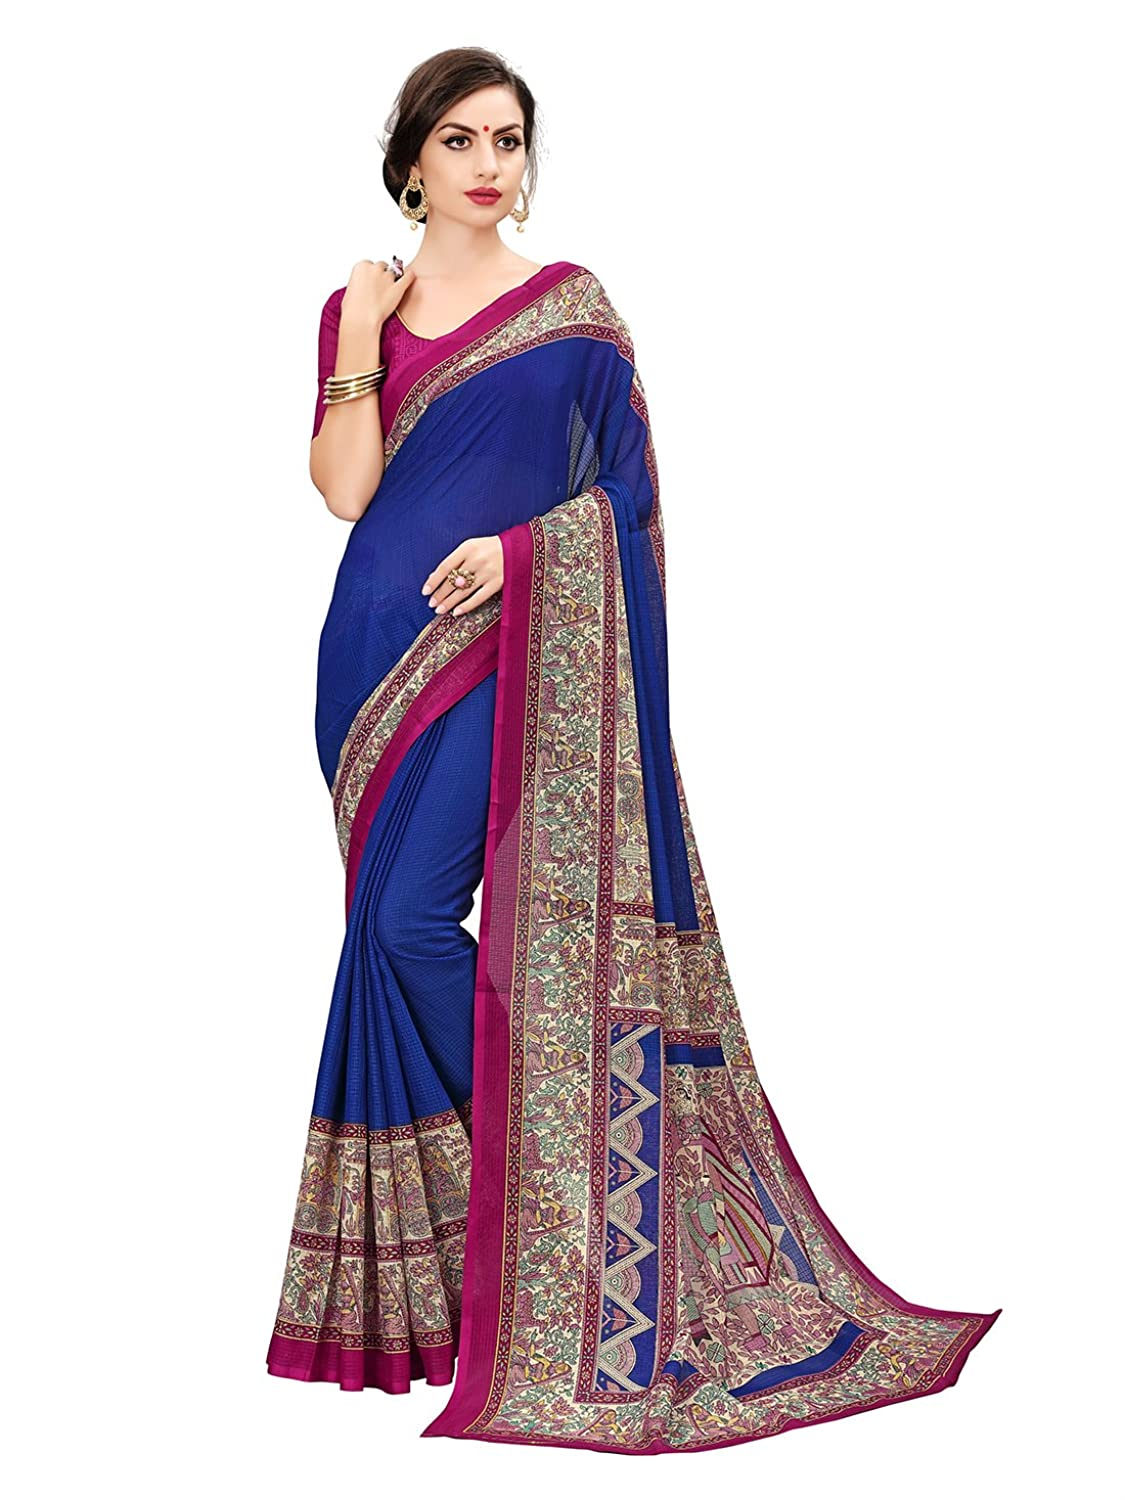 Women's Kalamkari Printed moonga cotton saree